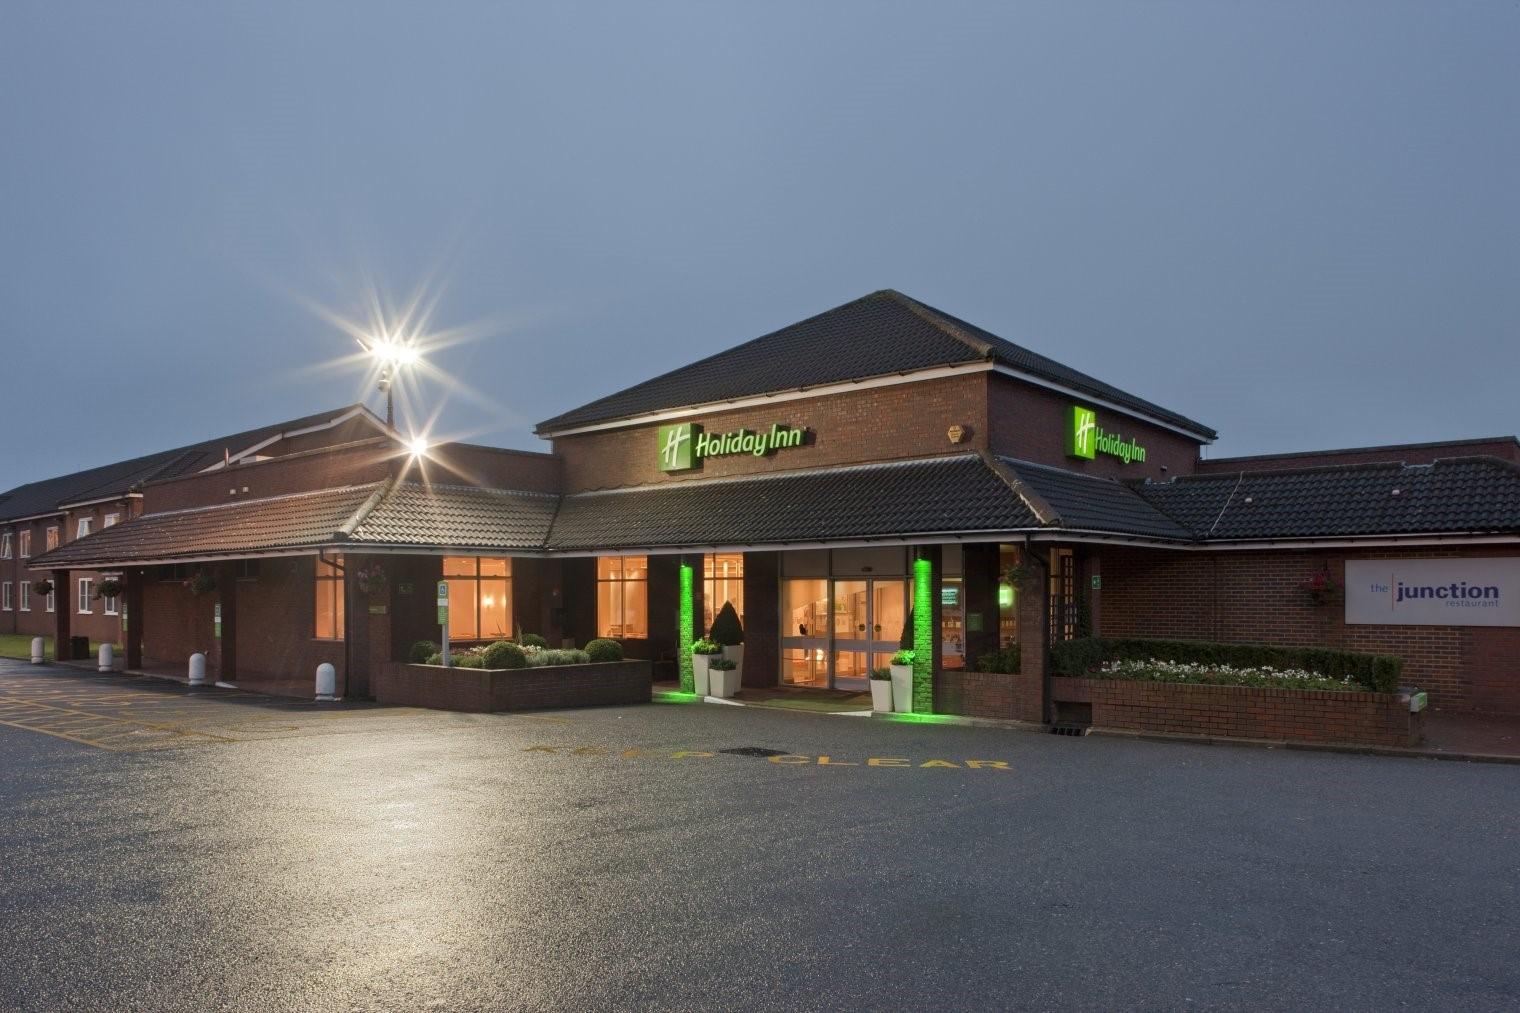 Picture of Holiday Inn High Wycombe M40 Junction 4